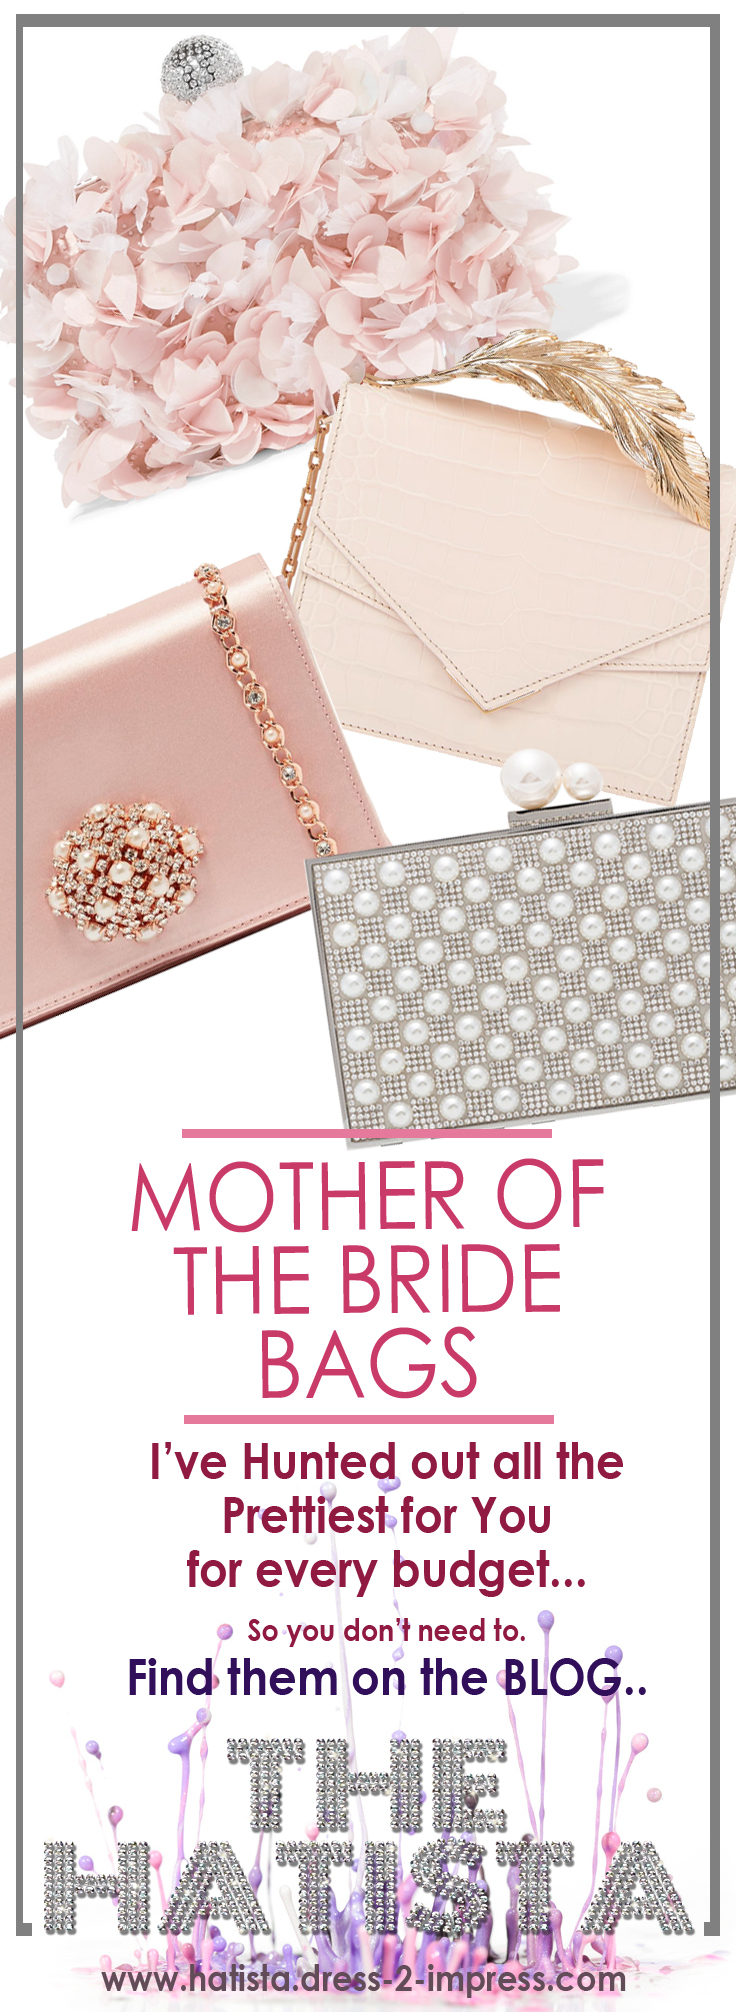 Outfit ideas, all the best bags for the season for Mother of the Bride, from budget to uber expensive. It's her big day, she's worth it. Fashion Outfits. Read the tips for Mother of the Bride Fashions from the Hatista www.dress-2-impress.com. #motherofthebride #bagaddict #clutchbags #ootd #springfashion #summerfashion.